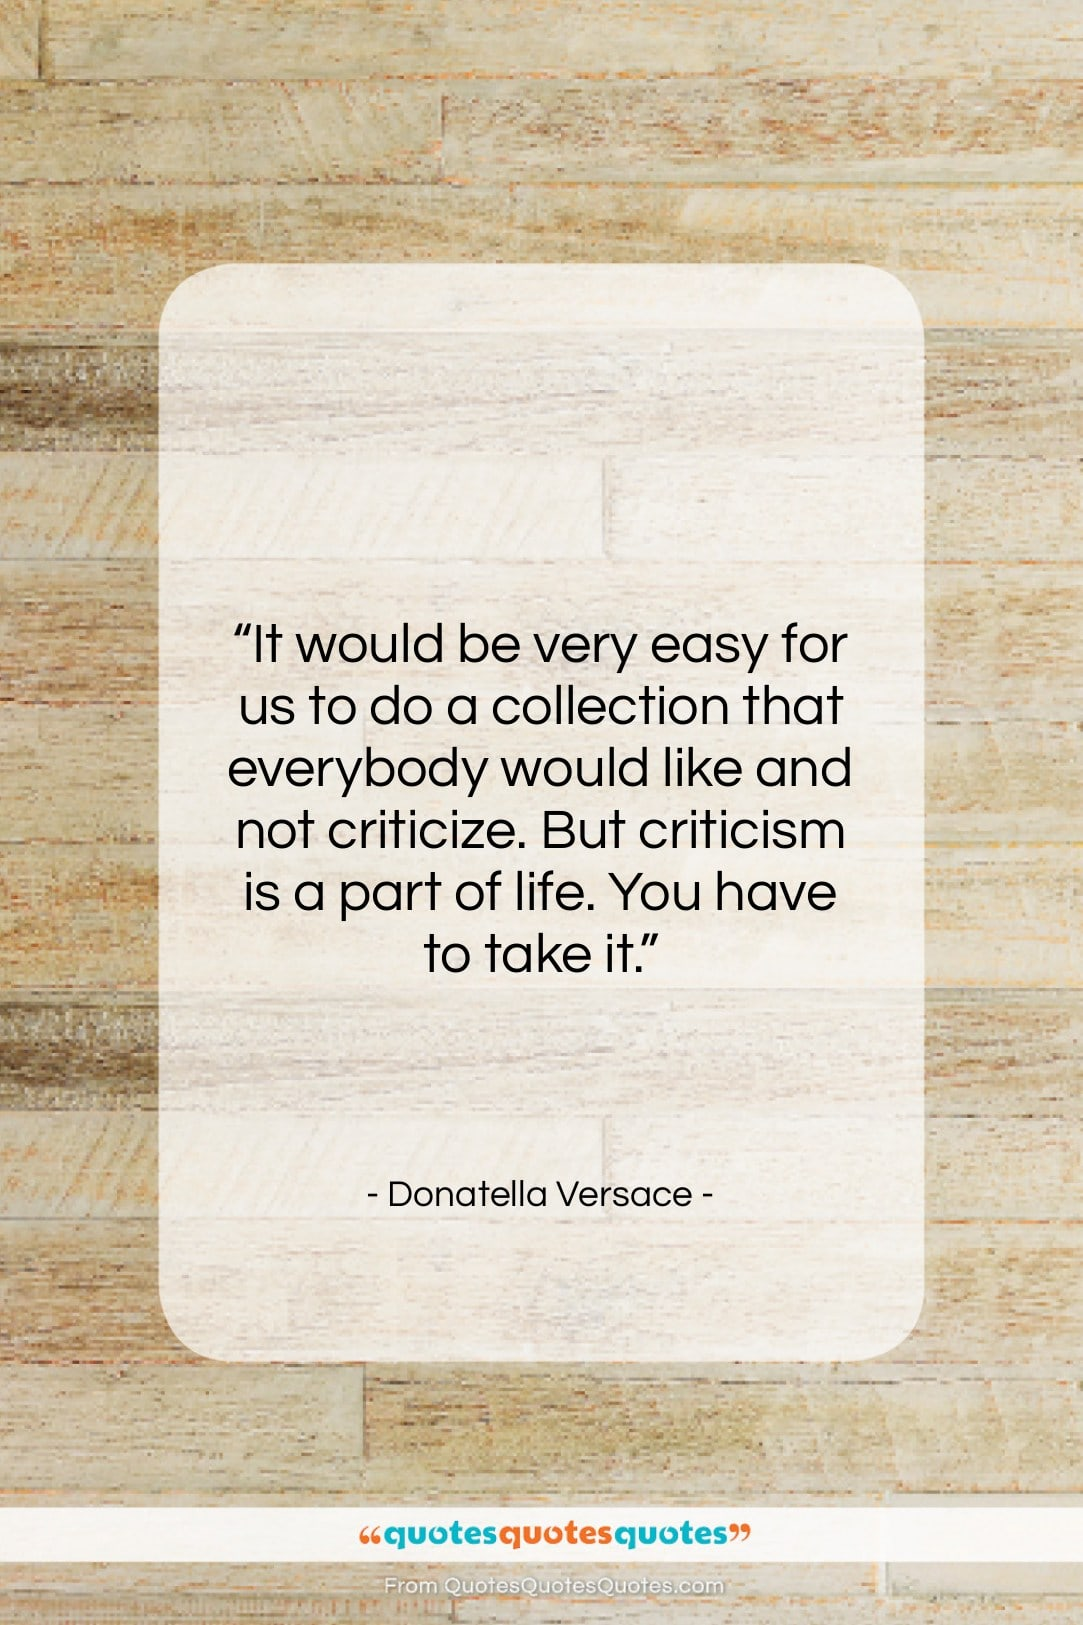 """Donatella Versace quote: """"It would be very easy for us…""""- at QuotesQuotesQuotes.com"""